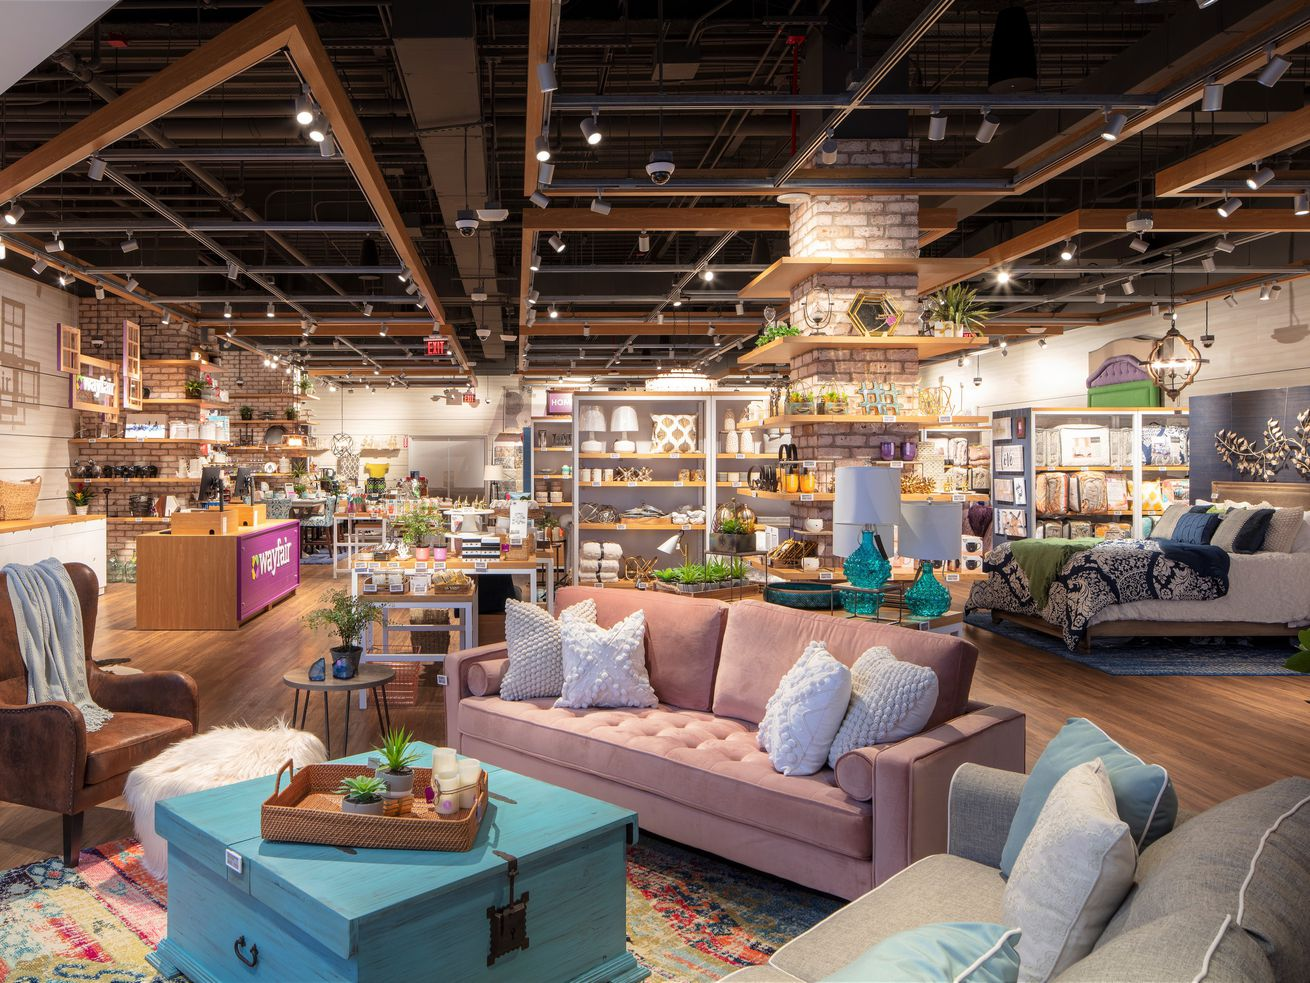 Wayfair?s first physical store opens this week